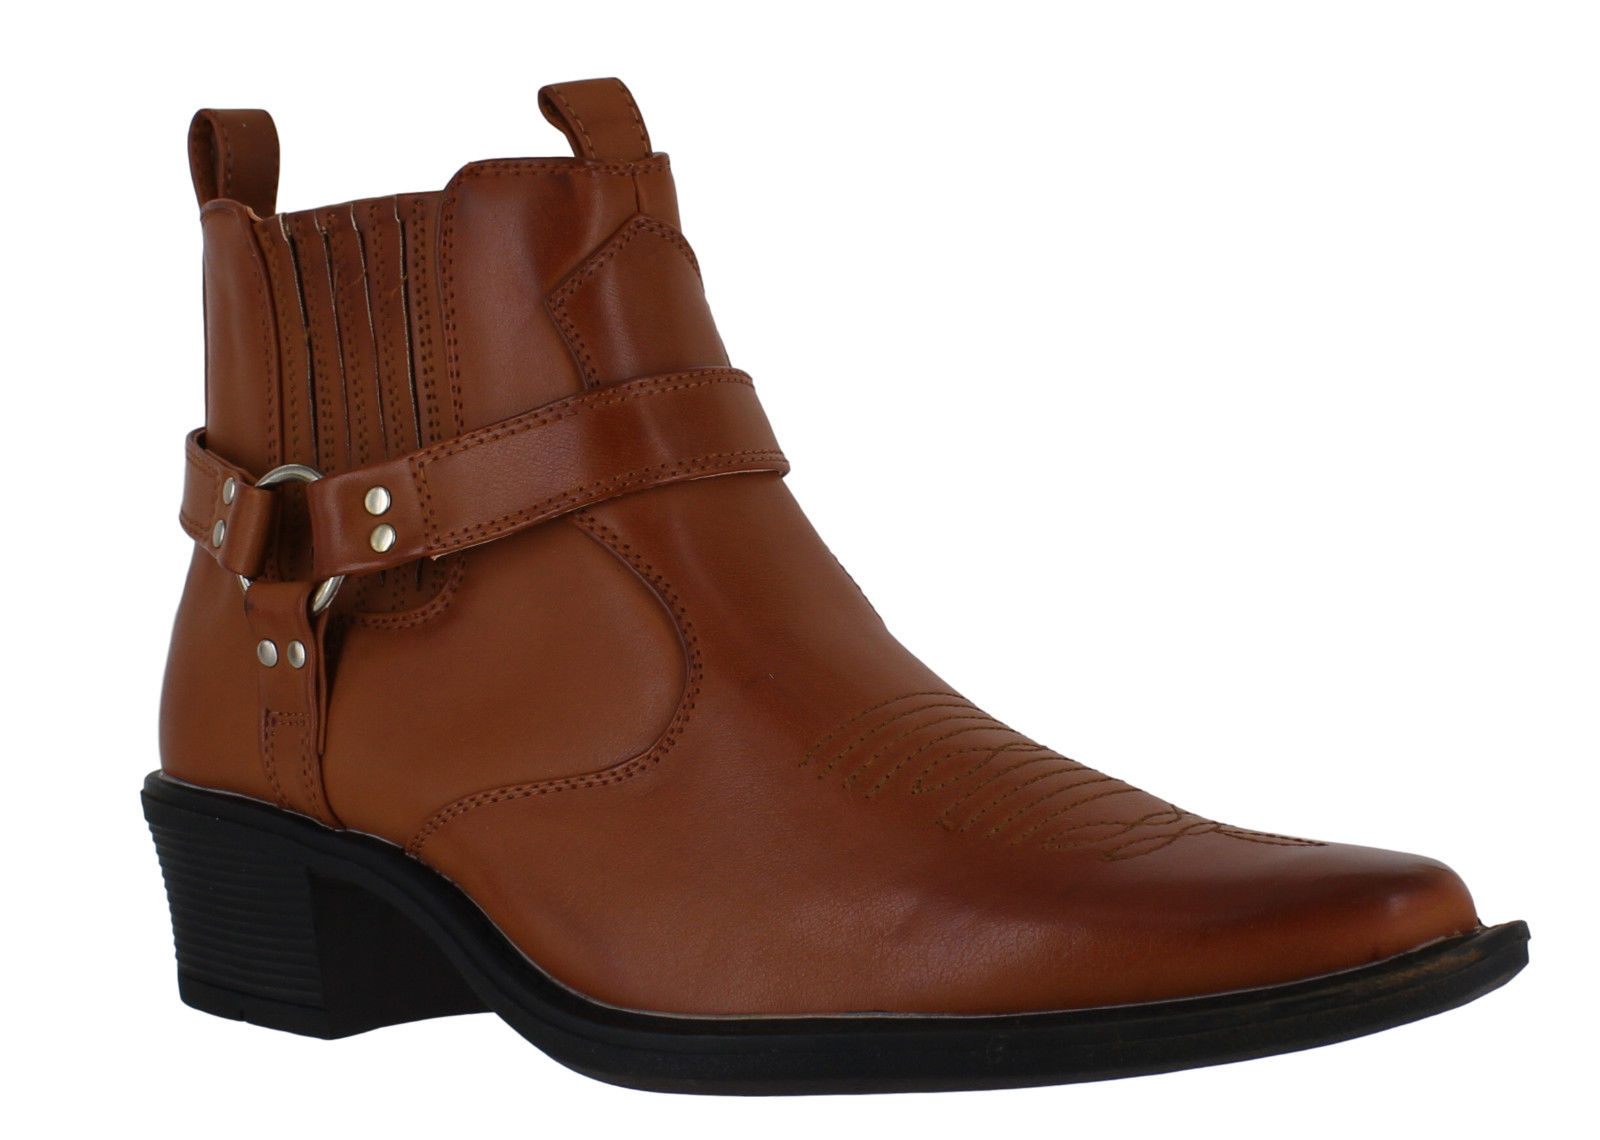 Mens Cowboy Pull On Buckle Western Harness Cuban Heel Ankle Boots Sizes 7 to 12